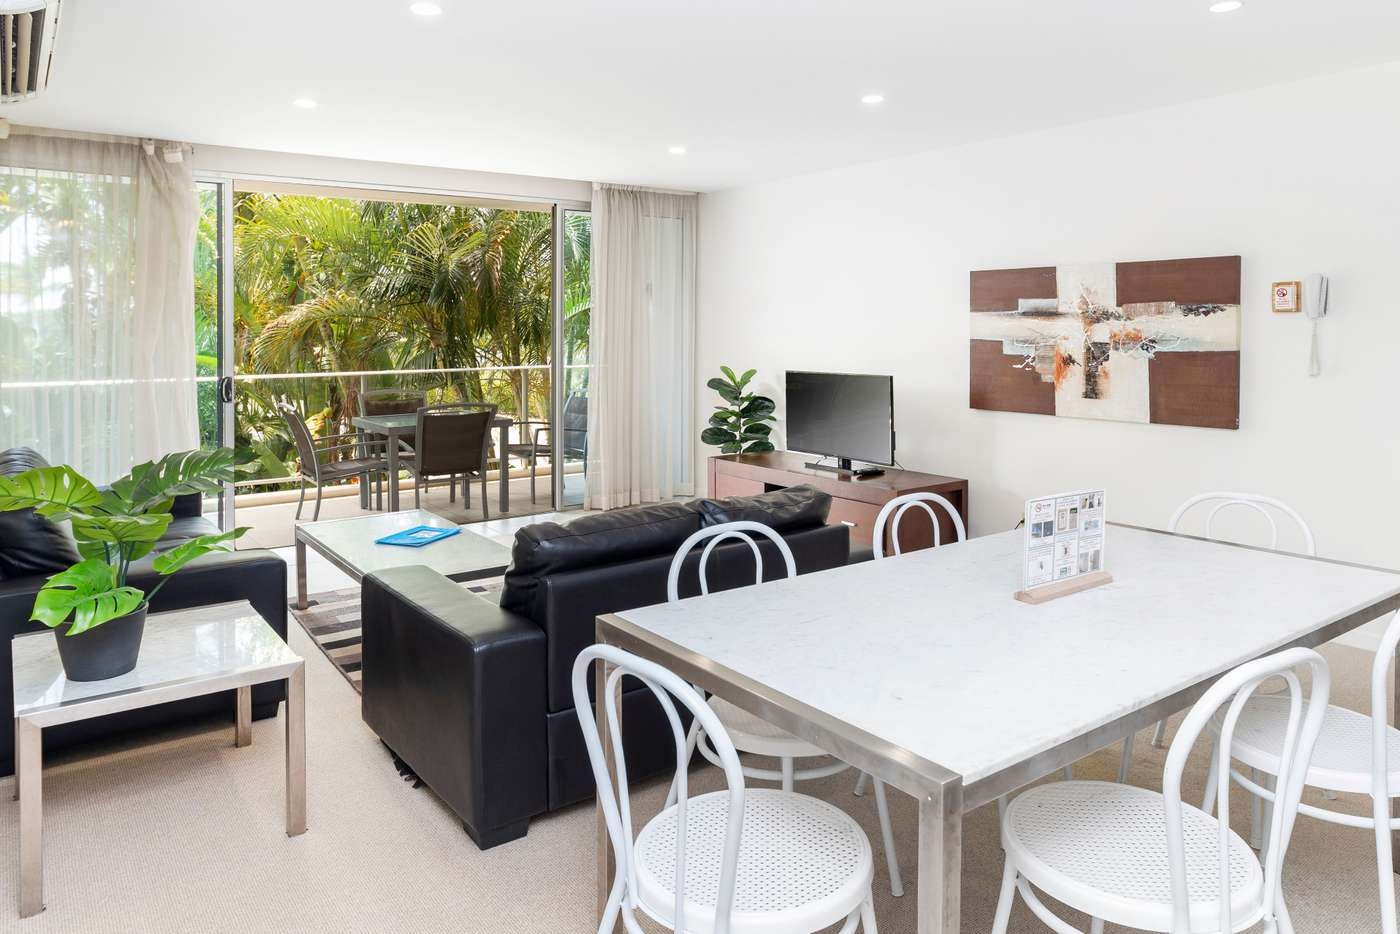 Main view of Homely apartment listing, 1217/2 Activa Way, Hope Island QLD 4212